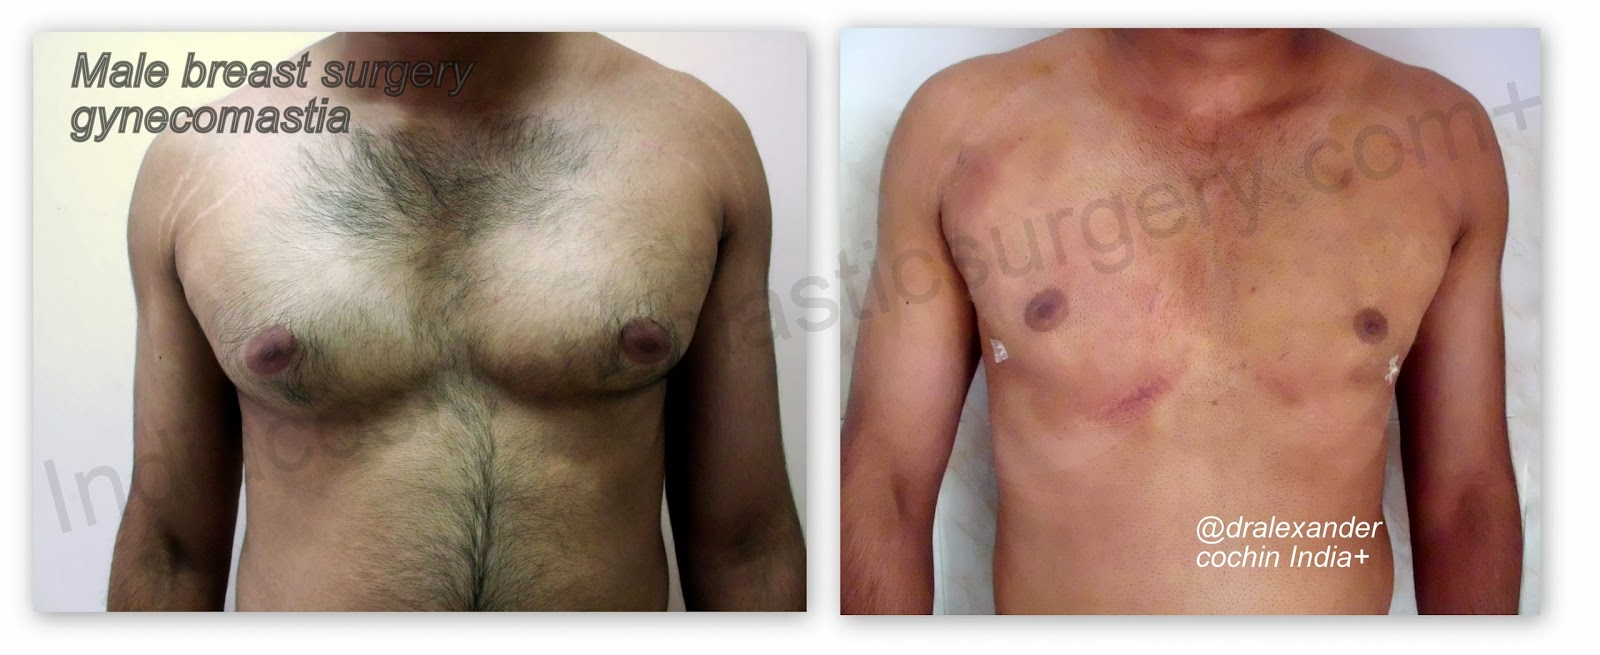 Surgically enlarging male breasts